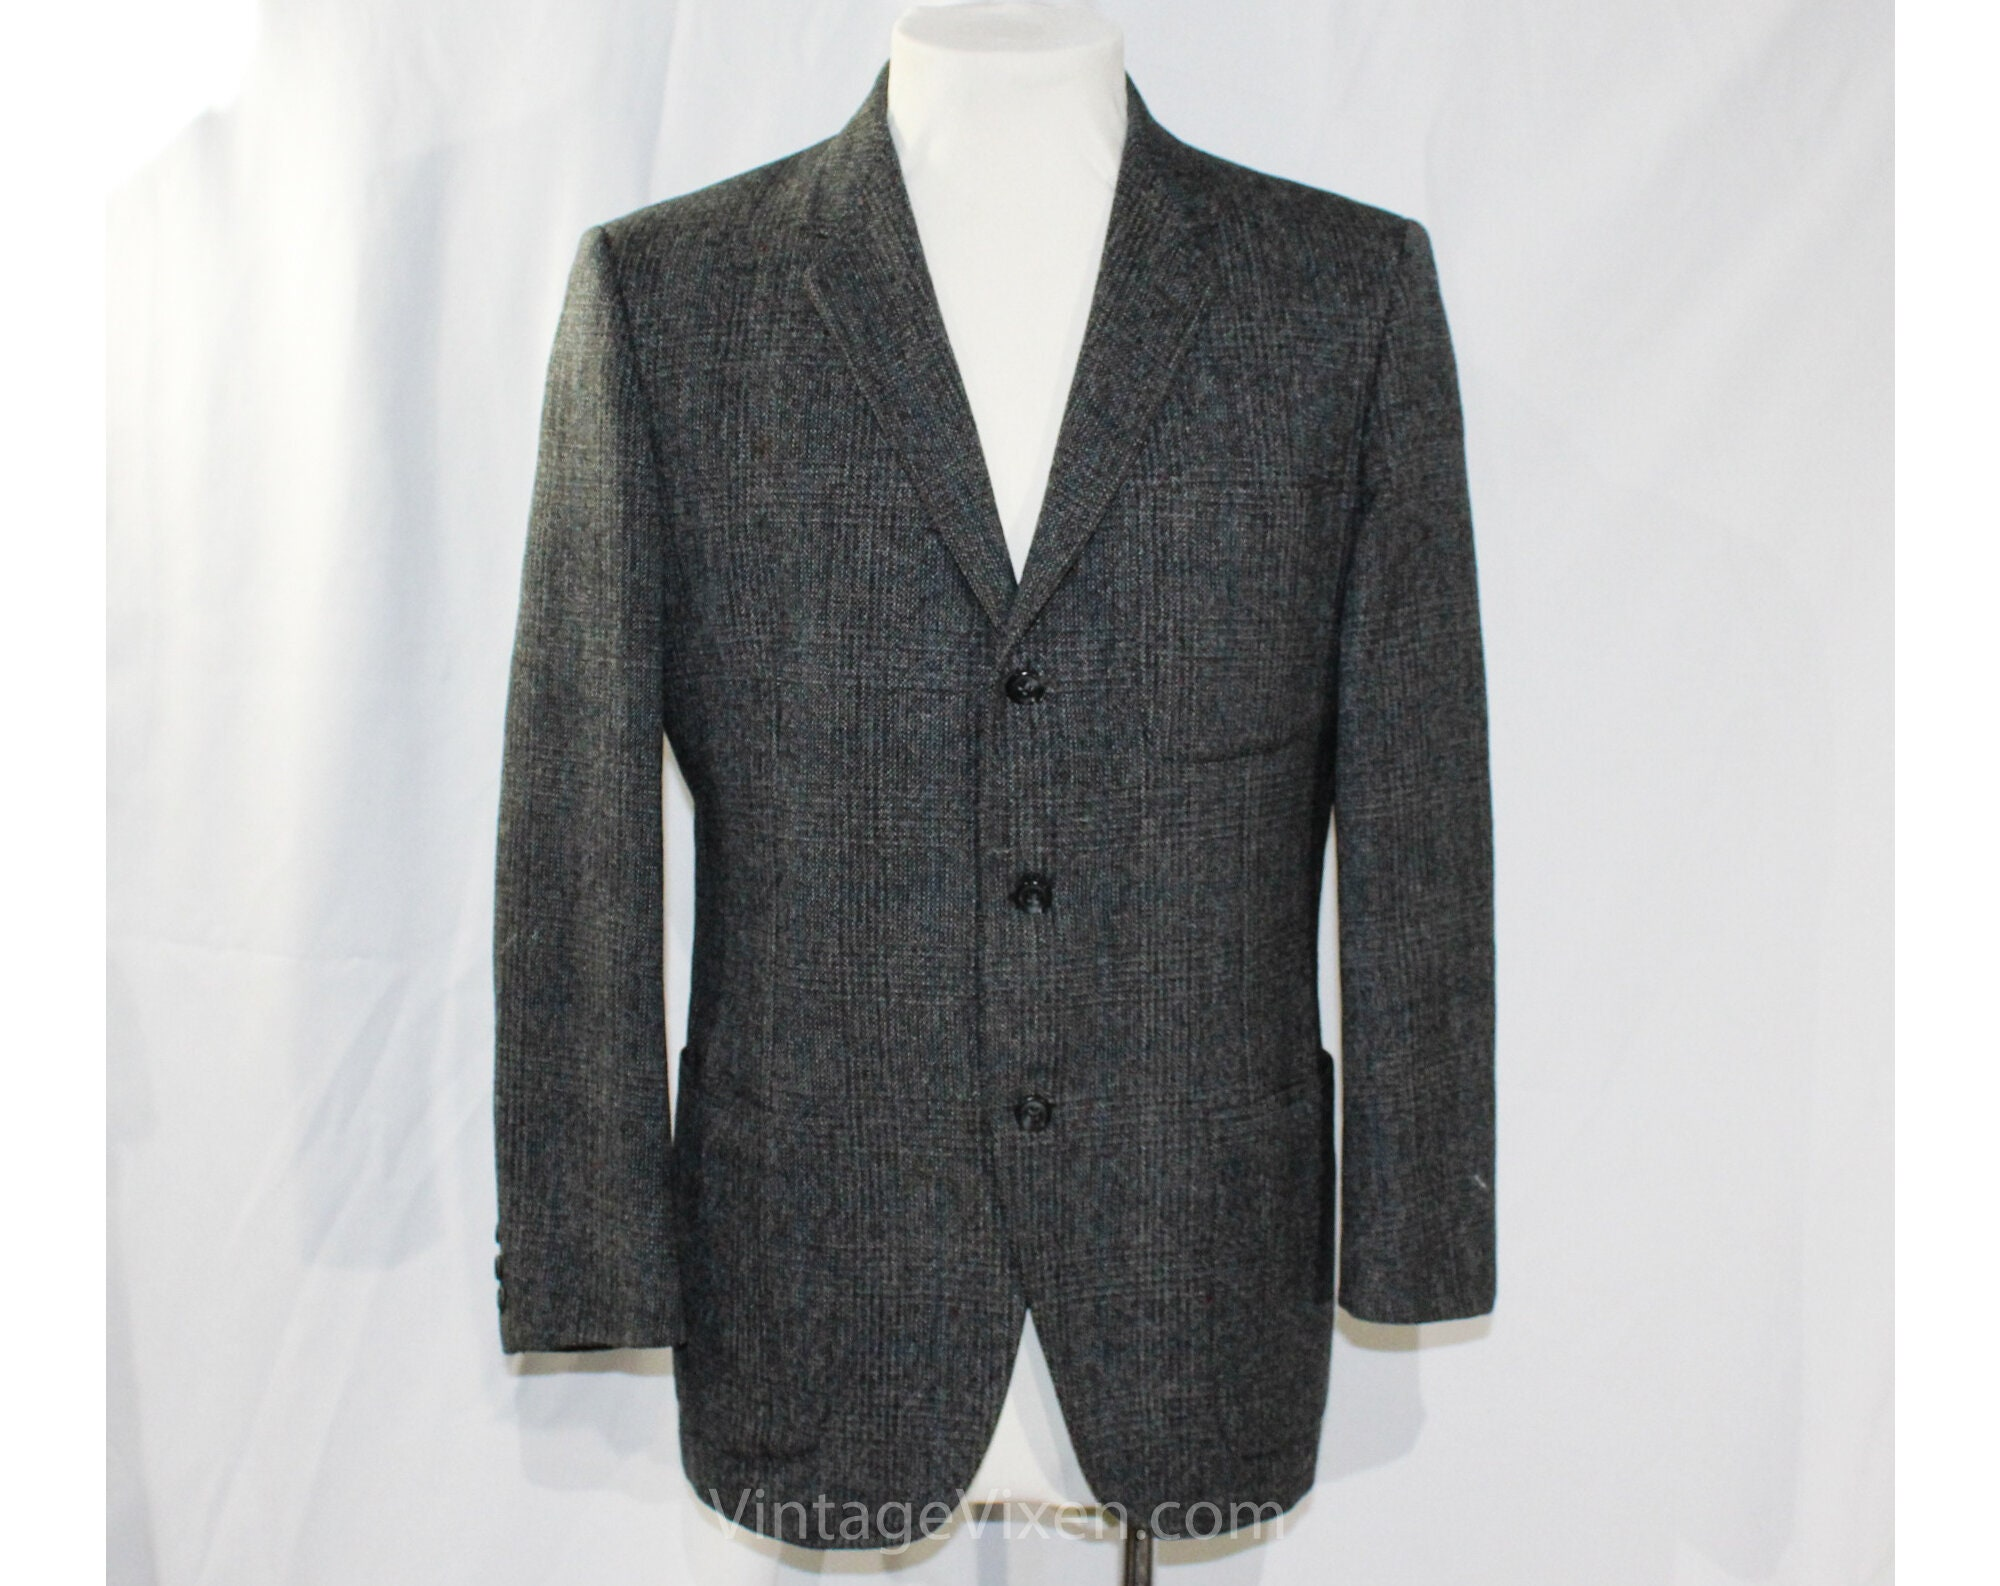 1950s Mens Suits & Sport Coats | 50s Suits & Blazers Mens 1950S Suit Jacket - Small Blue Gray Glen Plaid Wool Tweed Blazer Top Quality Mens 50S 60S Detroit Sport Coat Chest 42 Marked 39 $40.45 AT vintagedancer.com